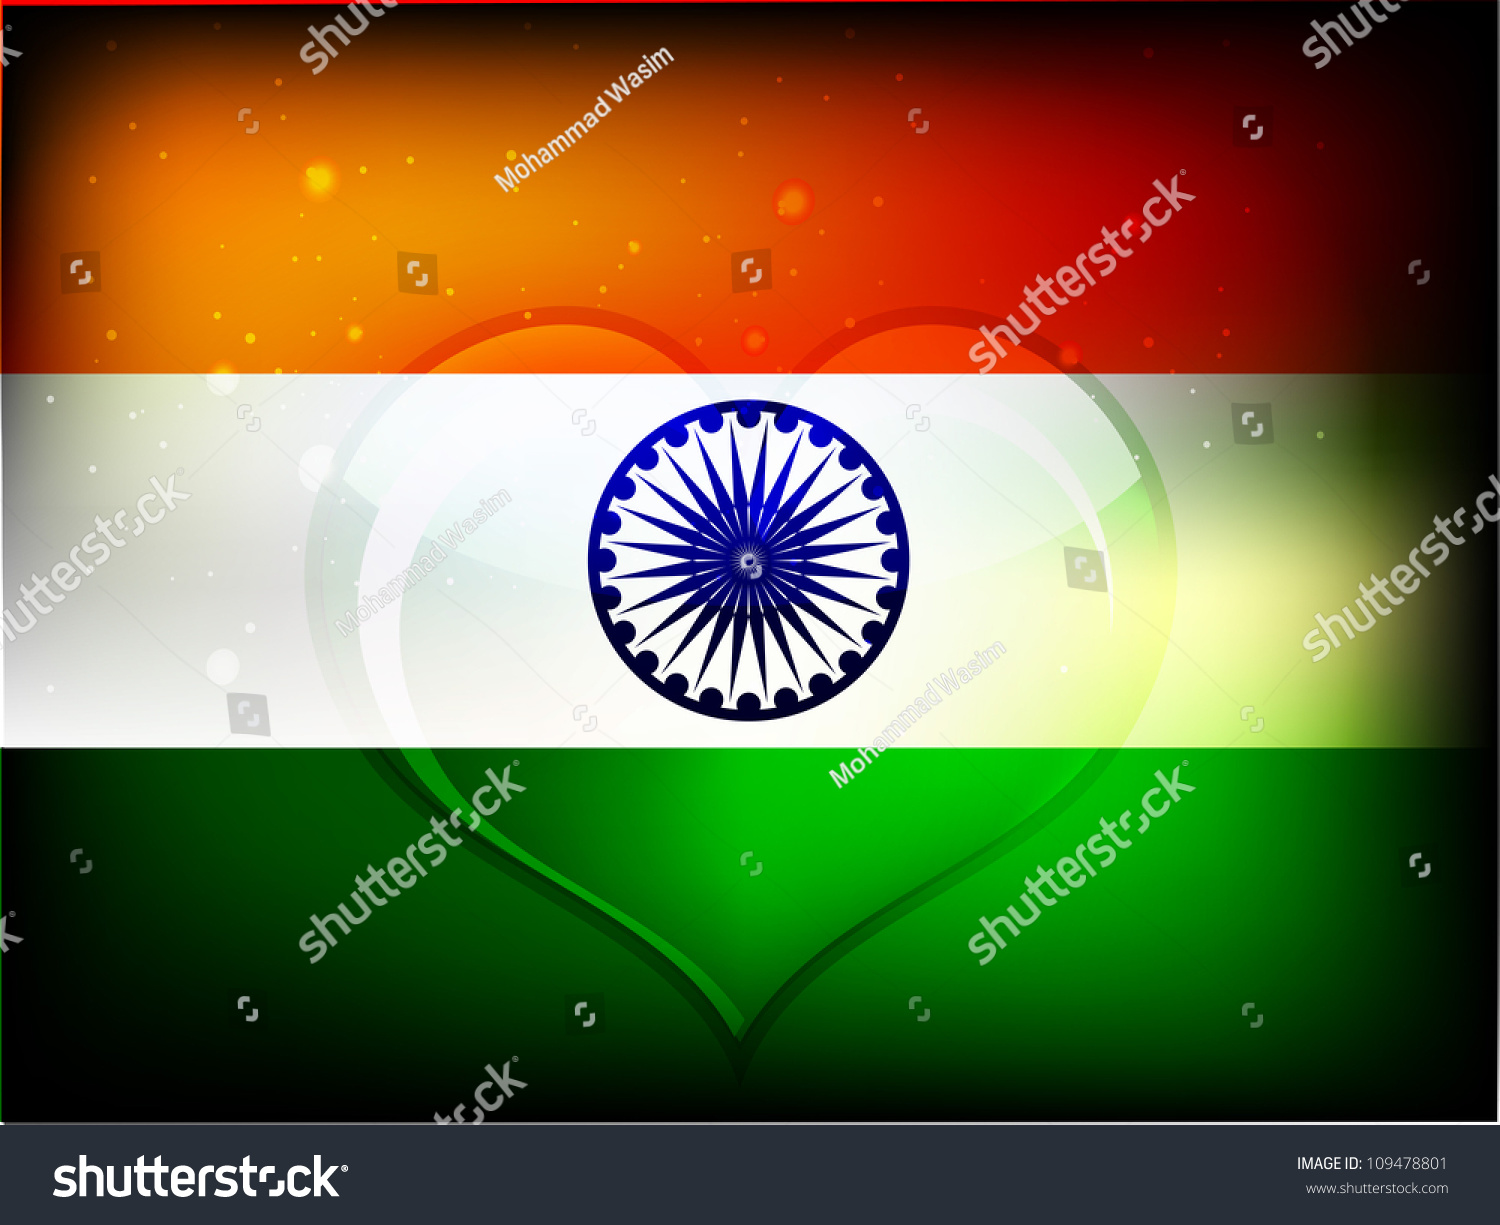 Beautiful Heart Indian Flag Design Republic Stock Vector Royalty